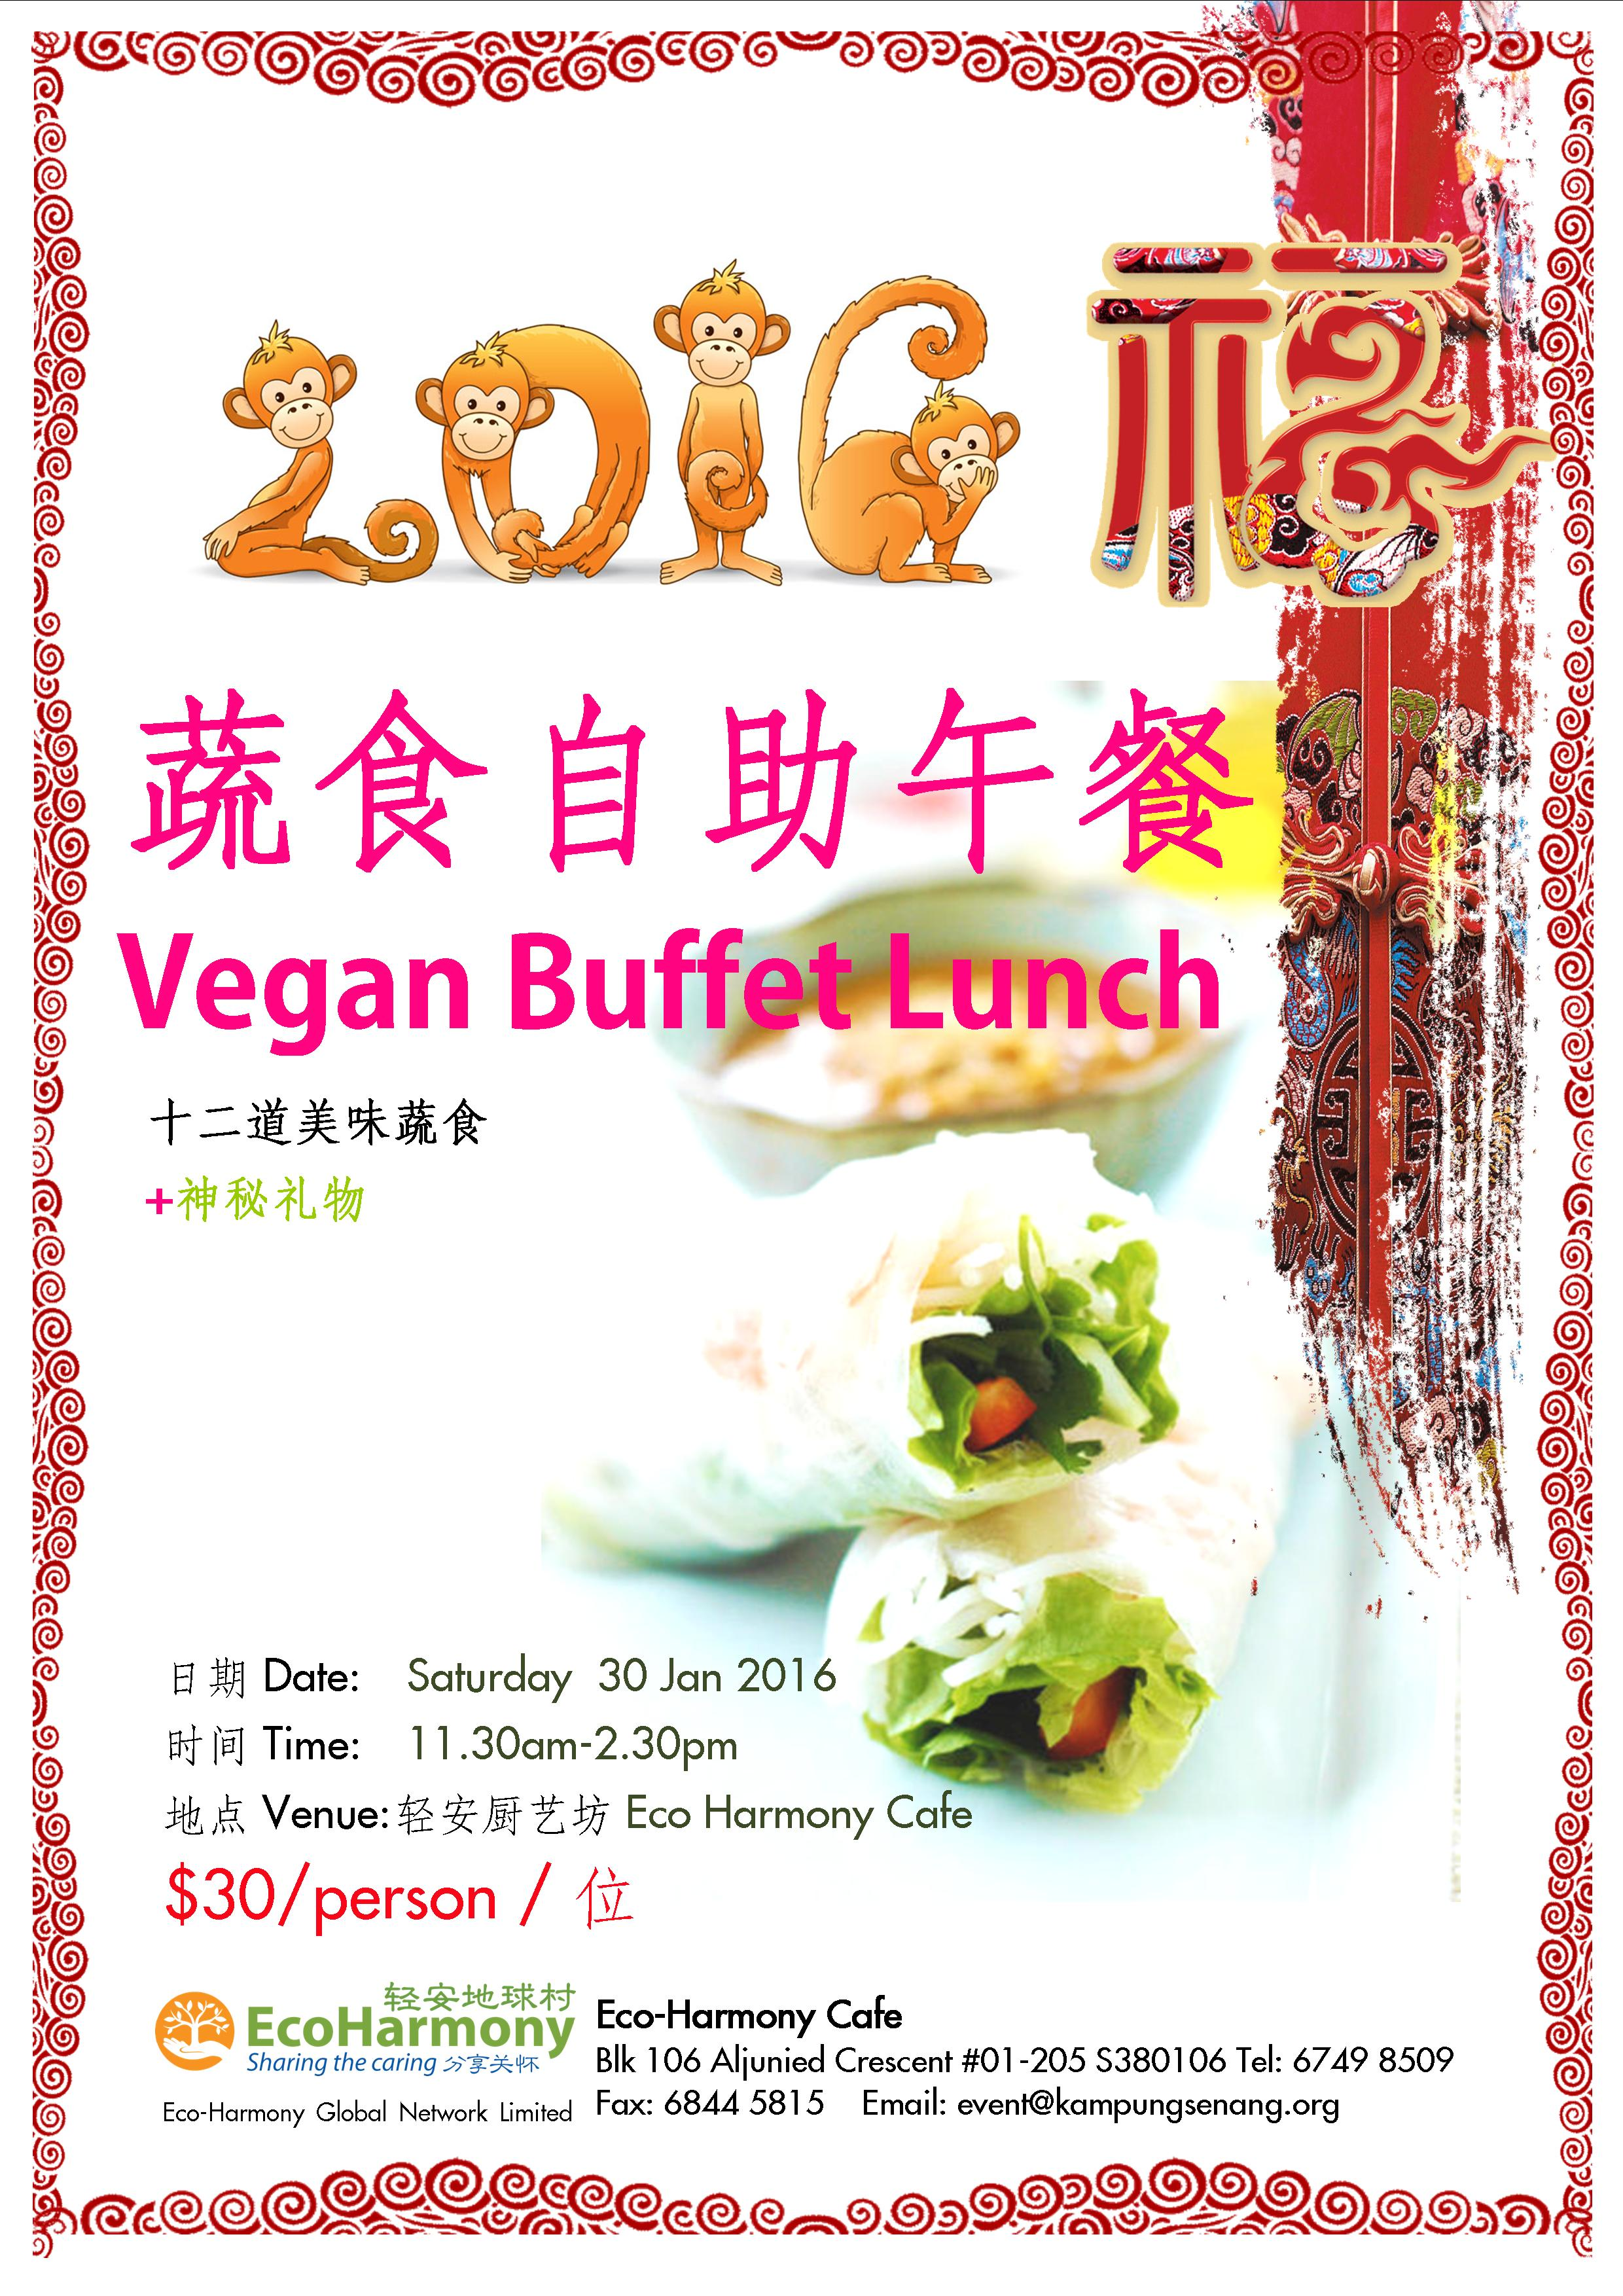 20160130 vegan lunch buffet flyer